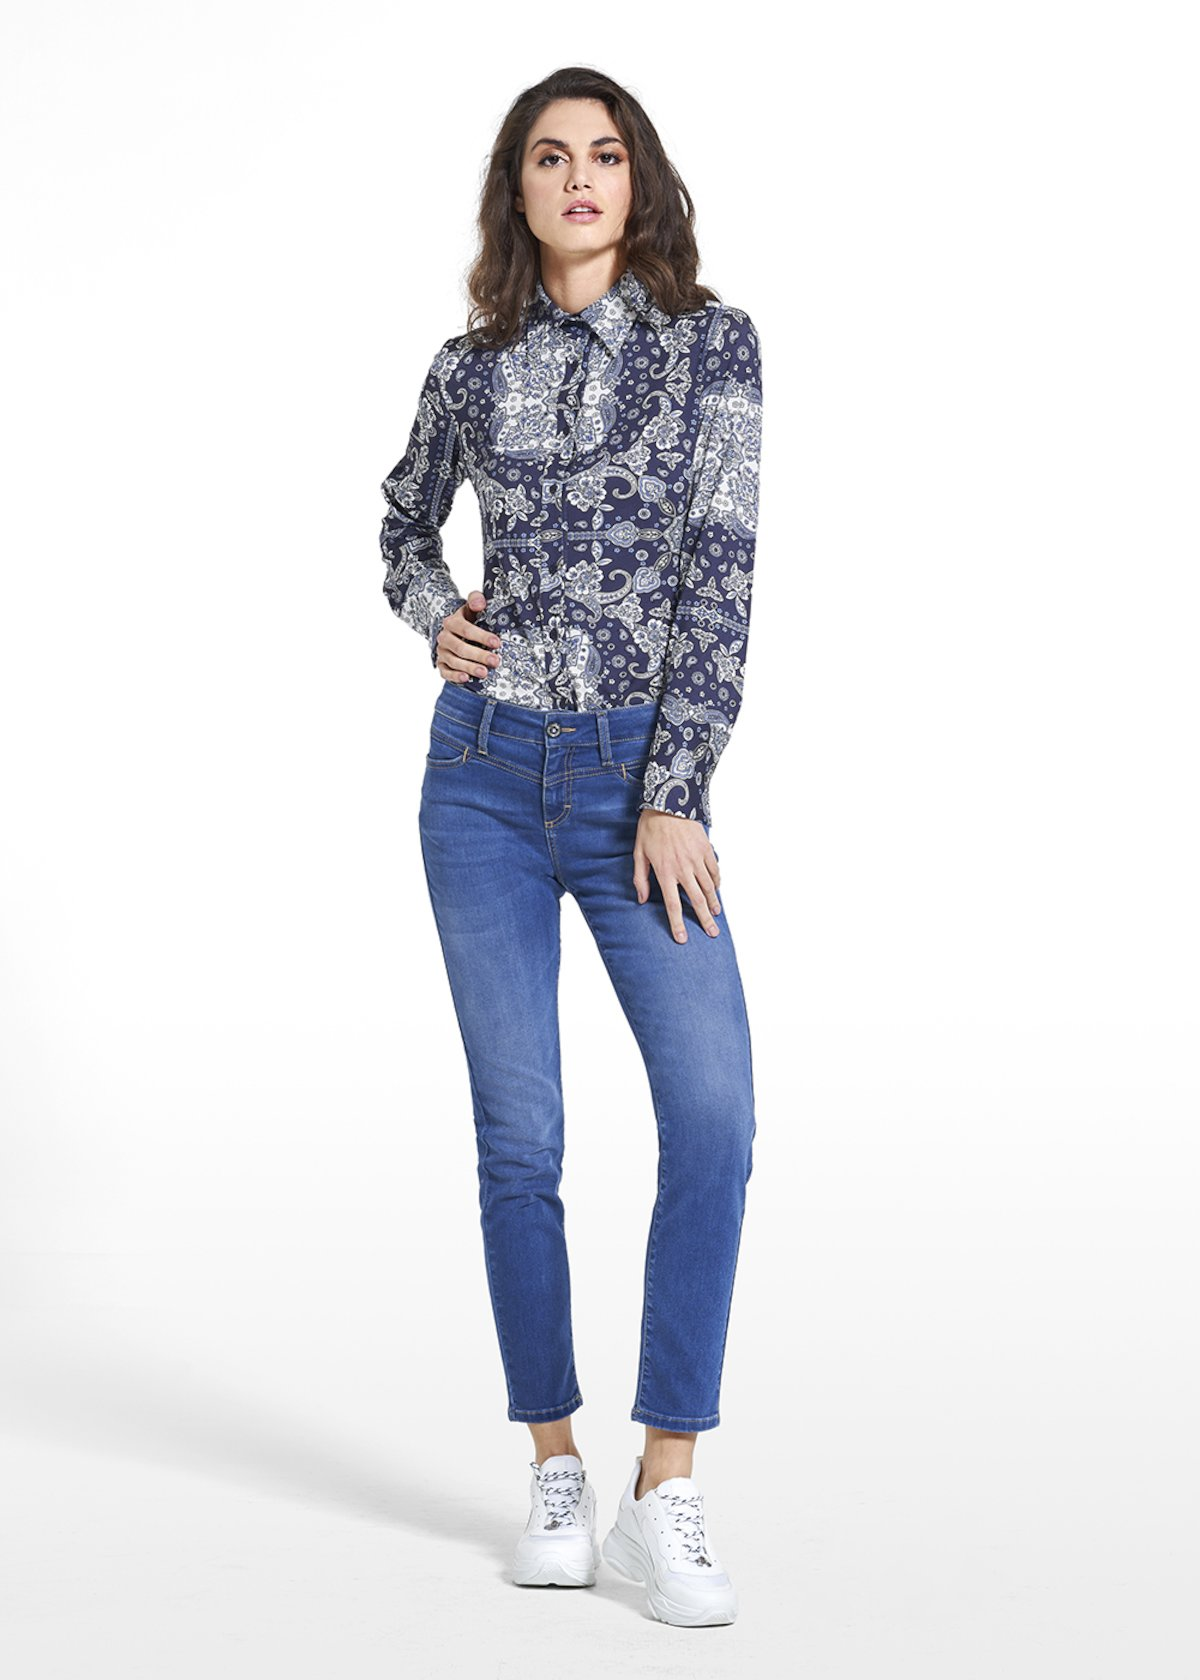 Blouse Carina in jersey patterned paisley bandana - Blue / White Fantasia - Woman - Category image